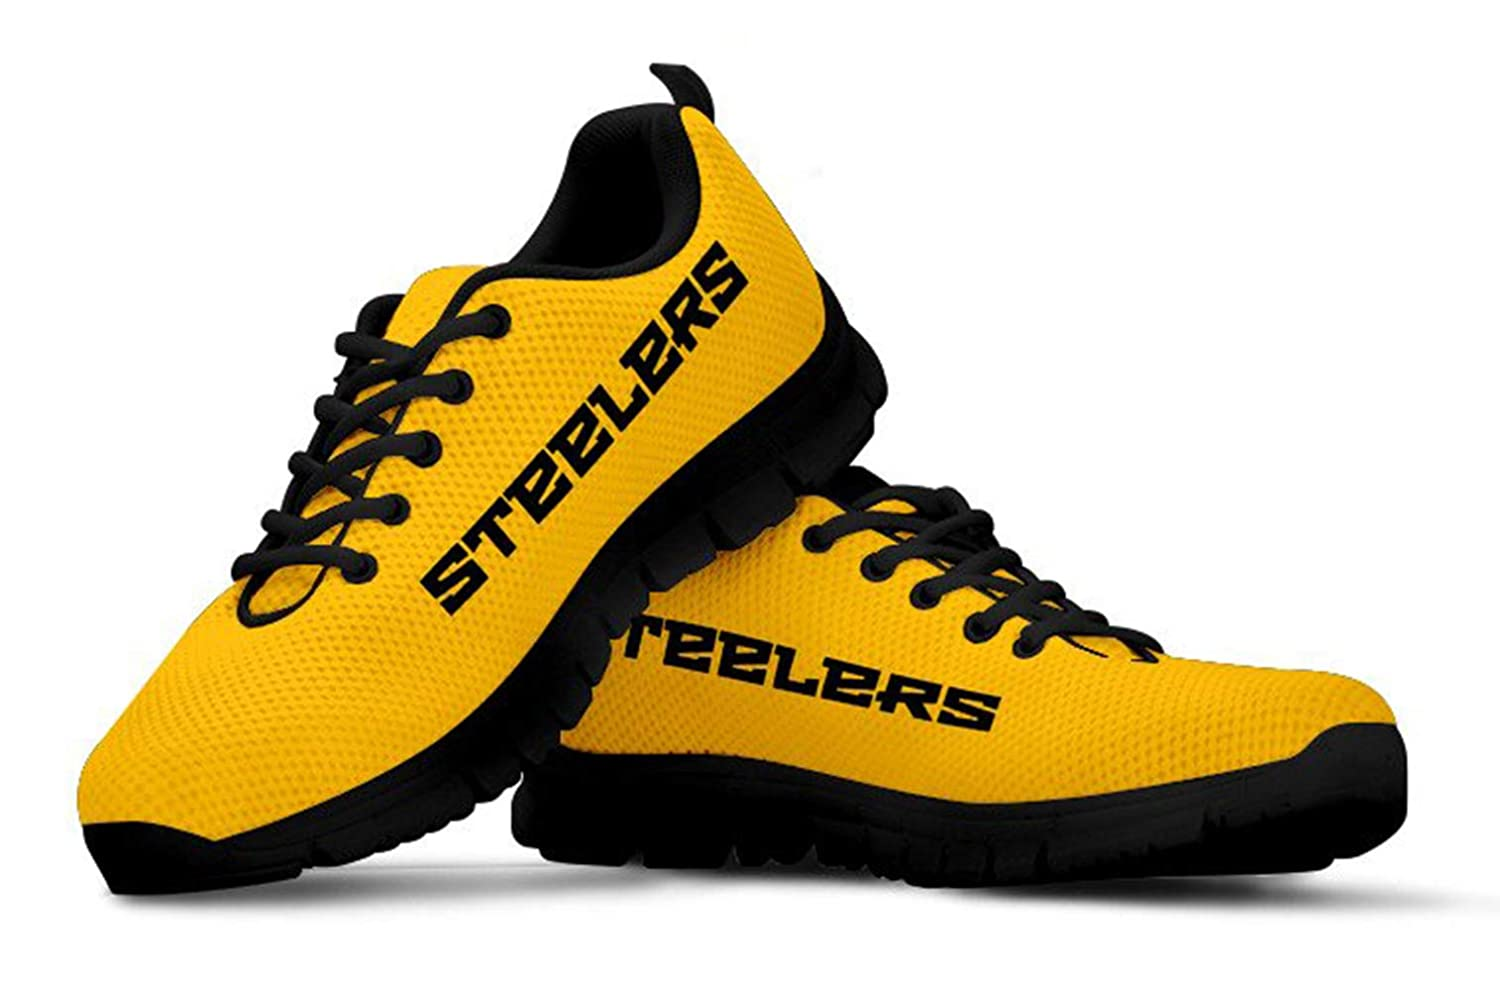 2a57d127ac2b Amazon.com   Pittsburgh Steelers Themed Casual Athletic Running Shoe Mens  Womens Sizes Steeler Apparel and Gifts for Men and Women   Sports   Outdoors